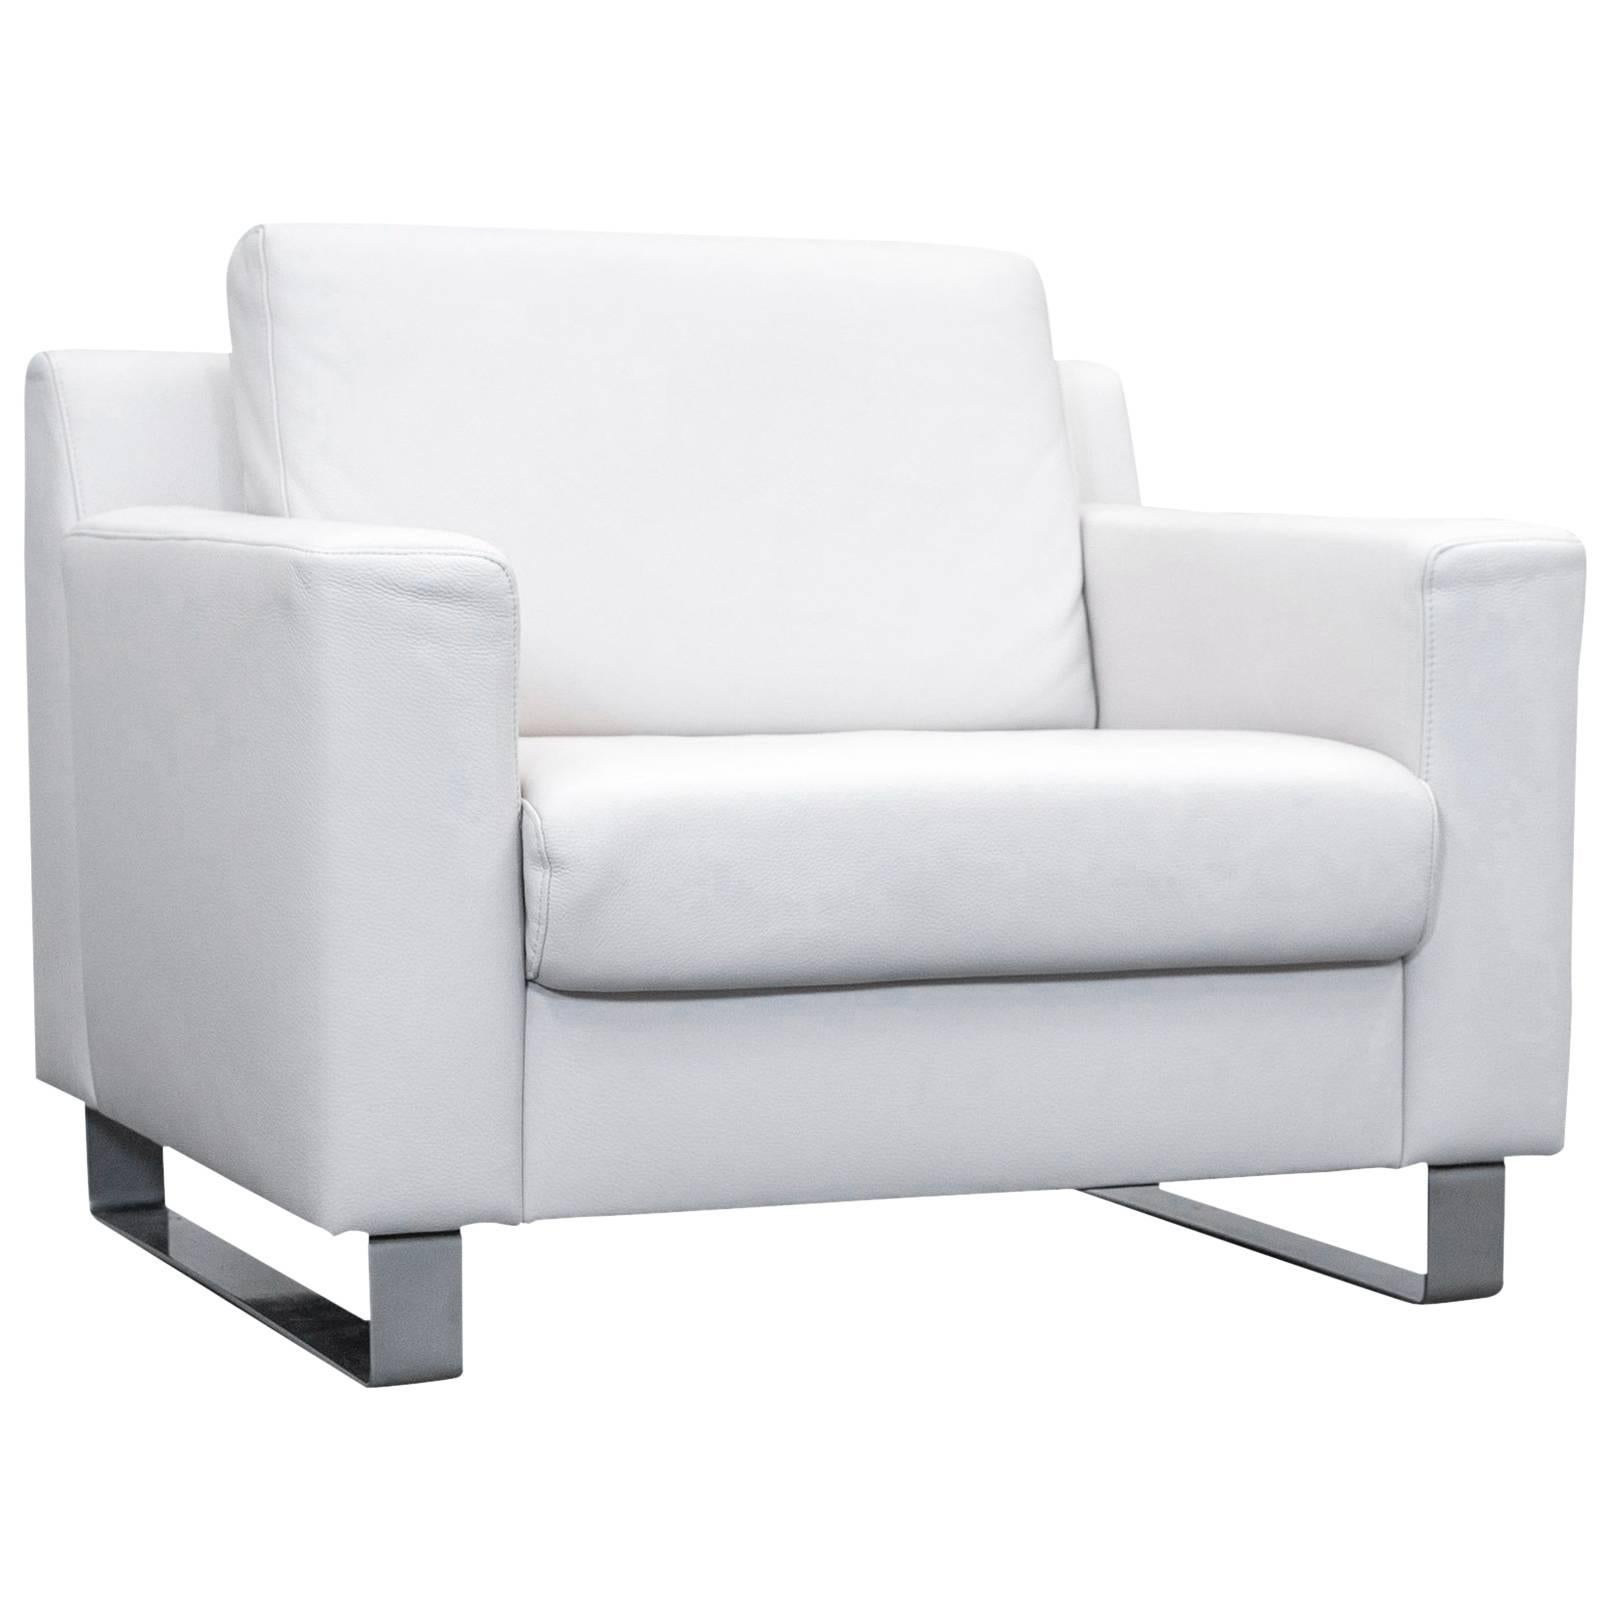 one sofa seat price ewald schillig designer leather armchair white couch modern for sale